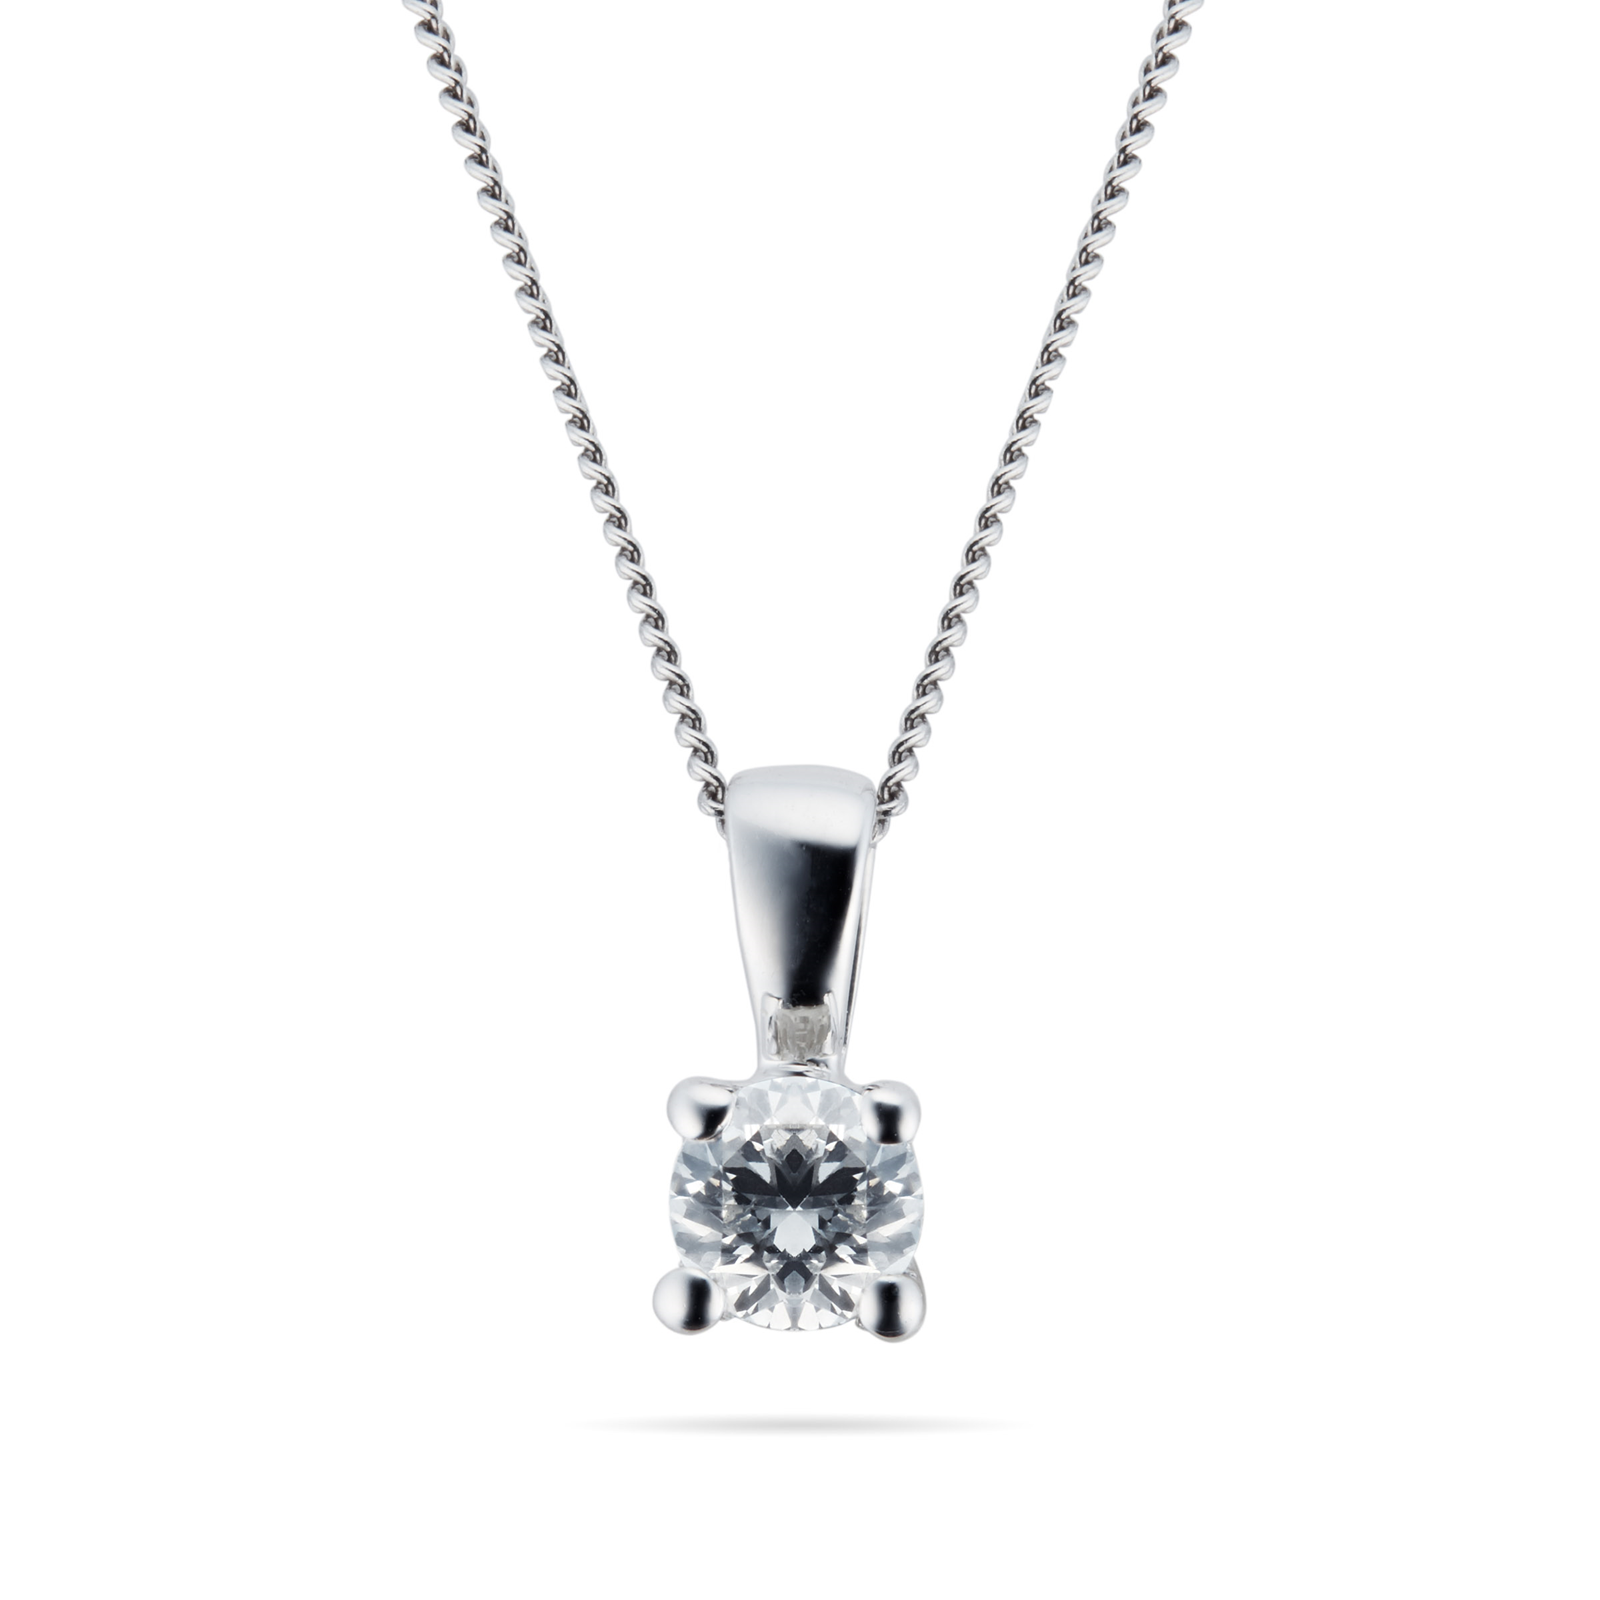 9ct White Gold 0.15ct 4 Claw 88 Facet Diamond Pendant